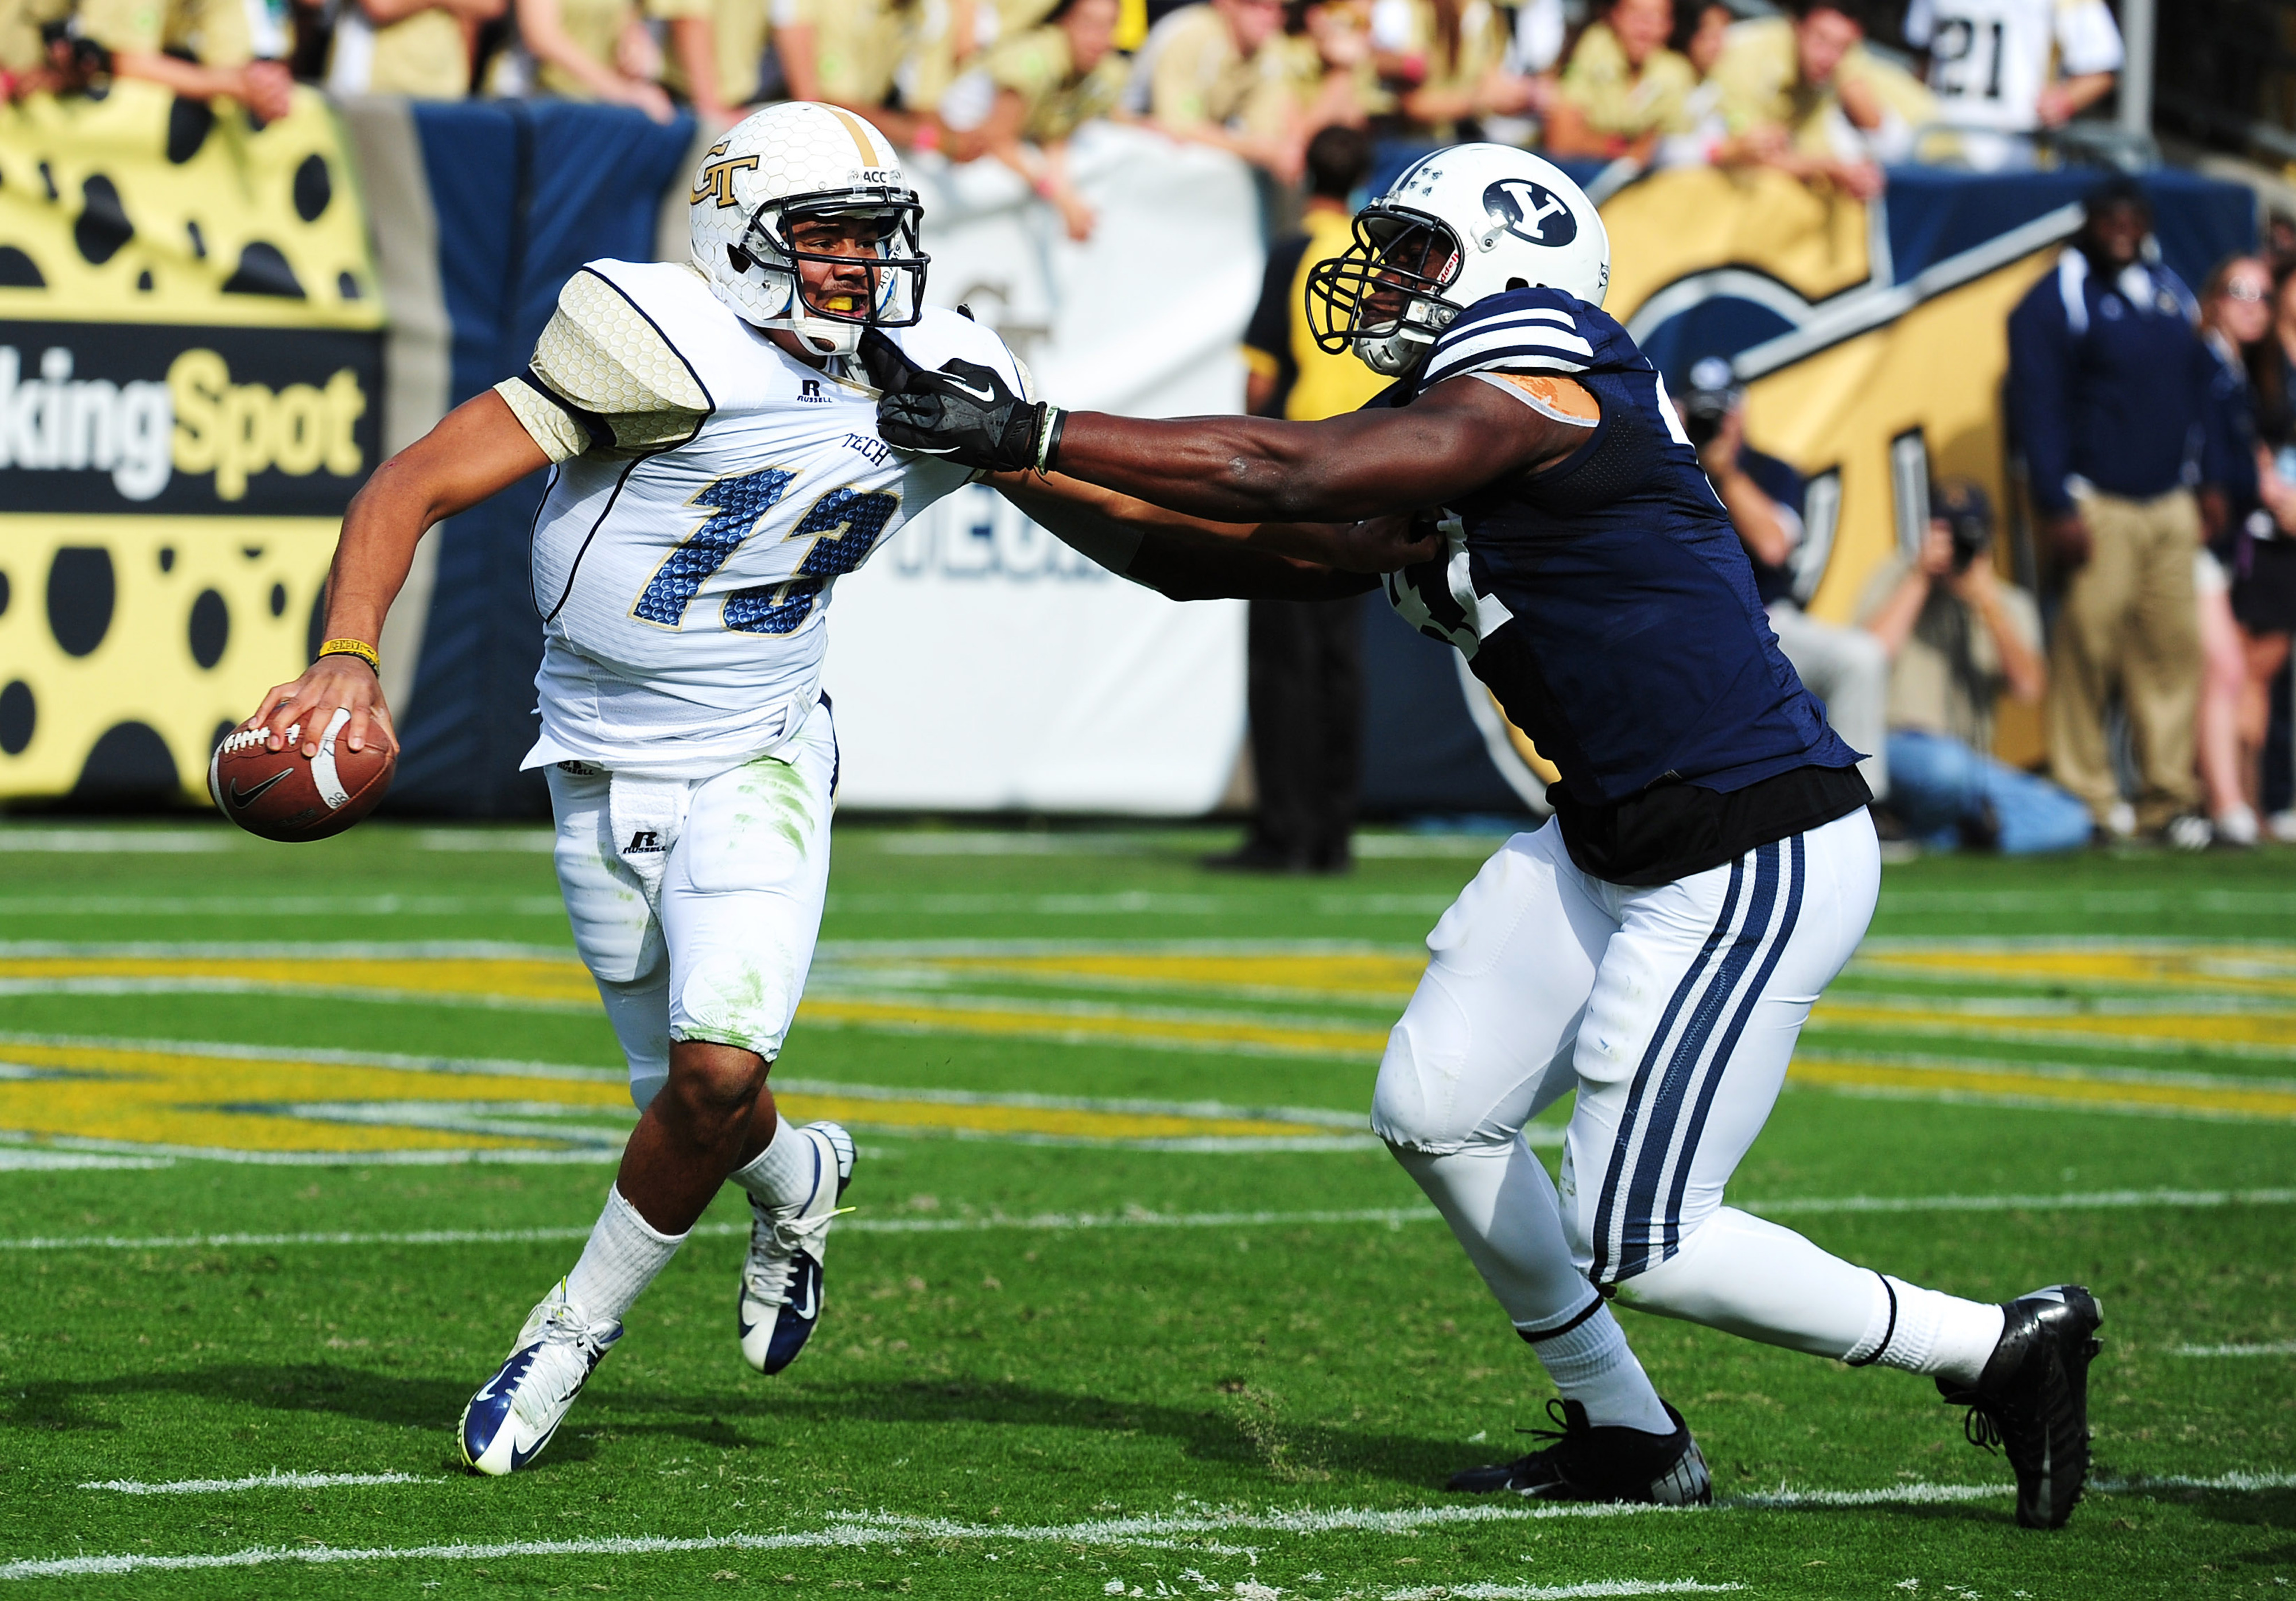 Ezekiel Ansah of BYU (right) is a player to remember